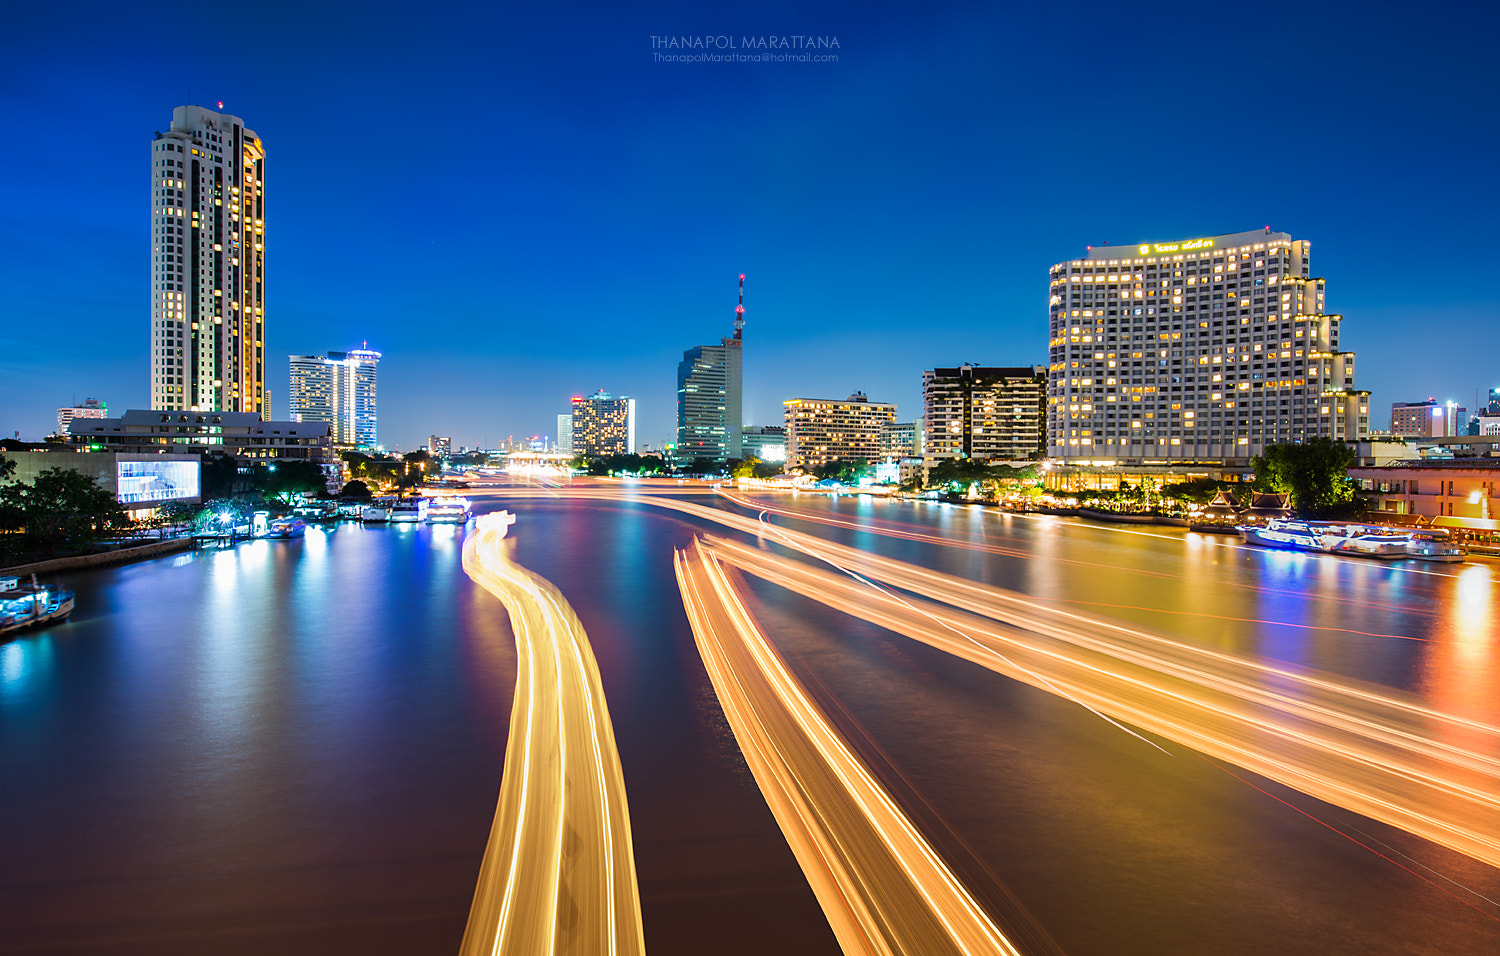 Photograph Bangkok Night by Thanapol Marattana on 500px